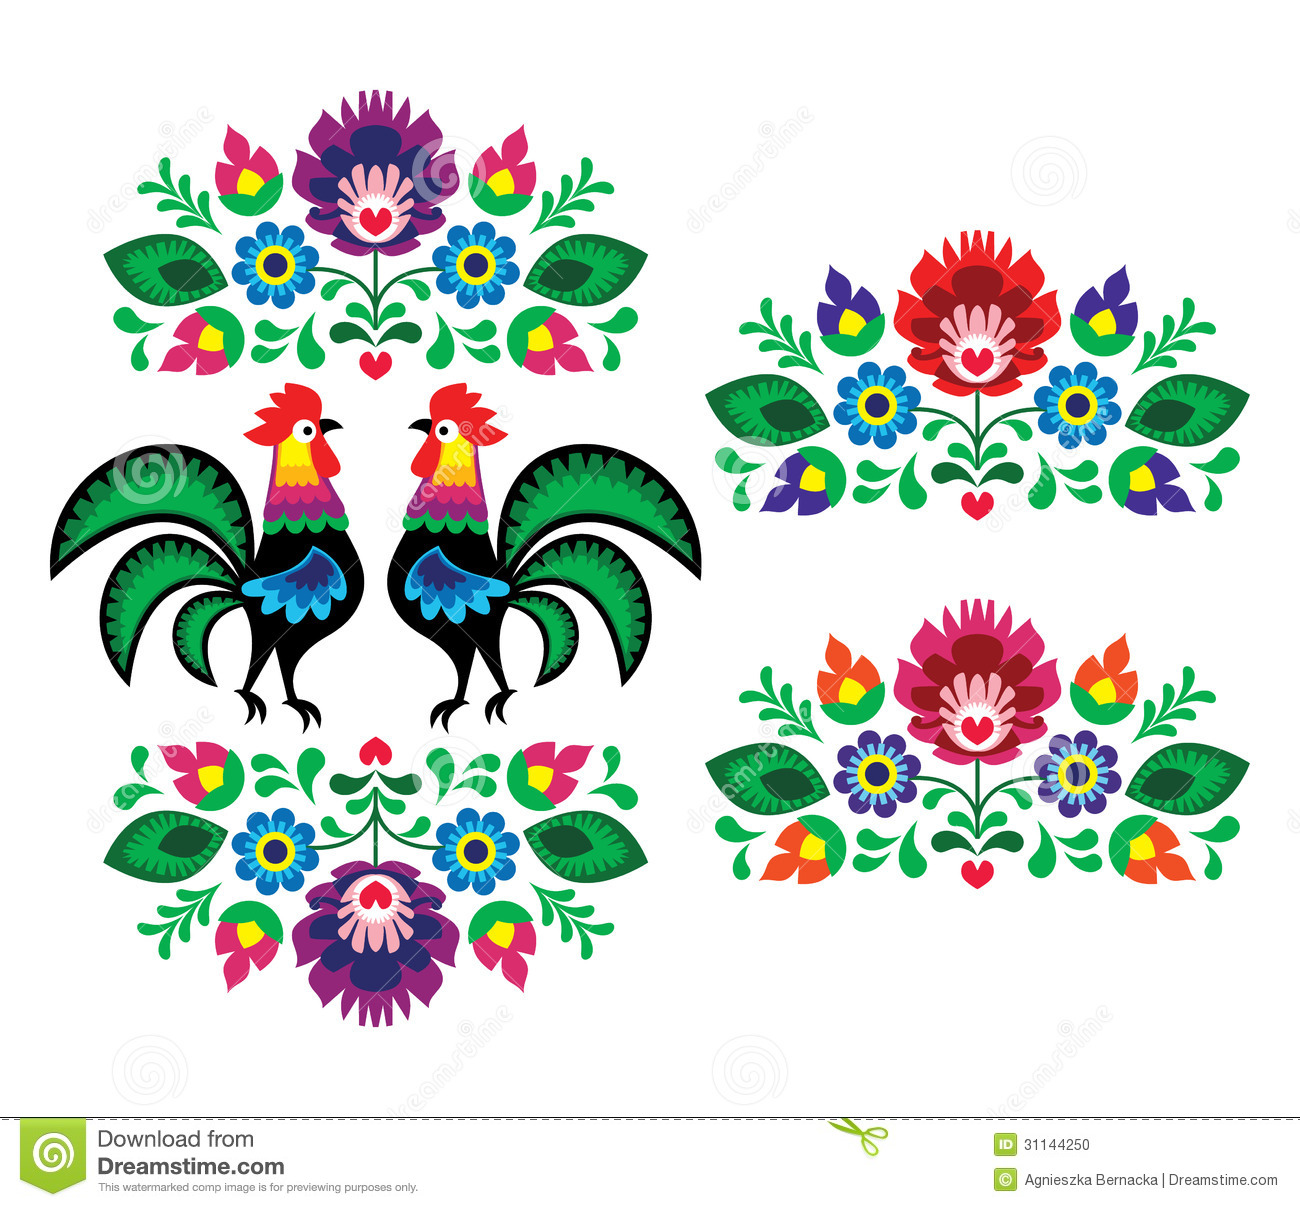 Polish ethnic floral embroidery with roosters